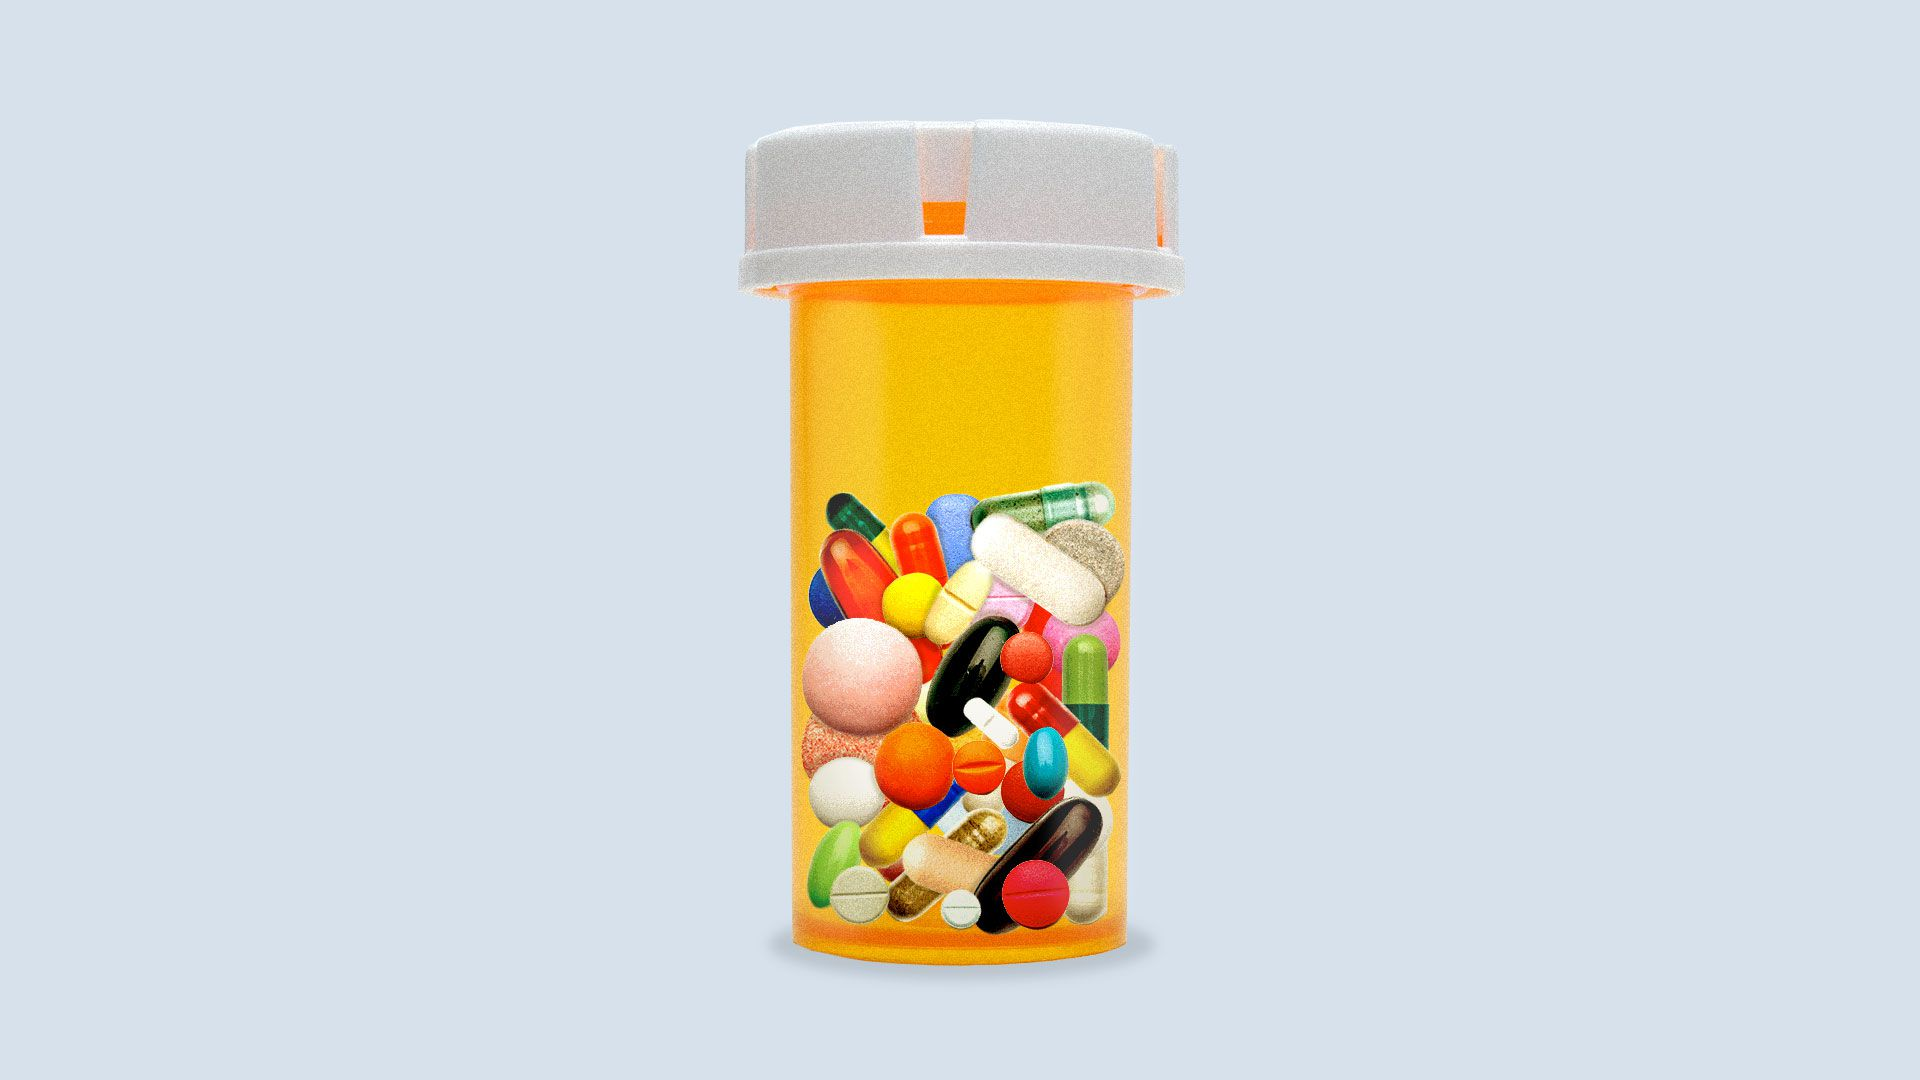 Illustration of a pill bottle filled with different colors, sizes and shapes of pills in it